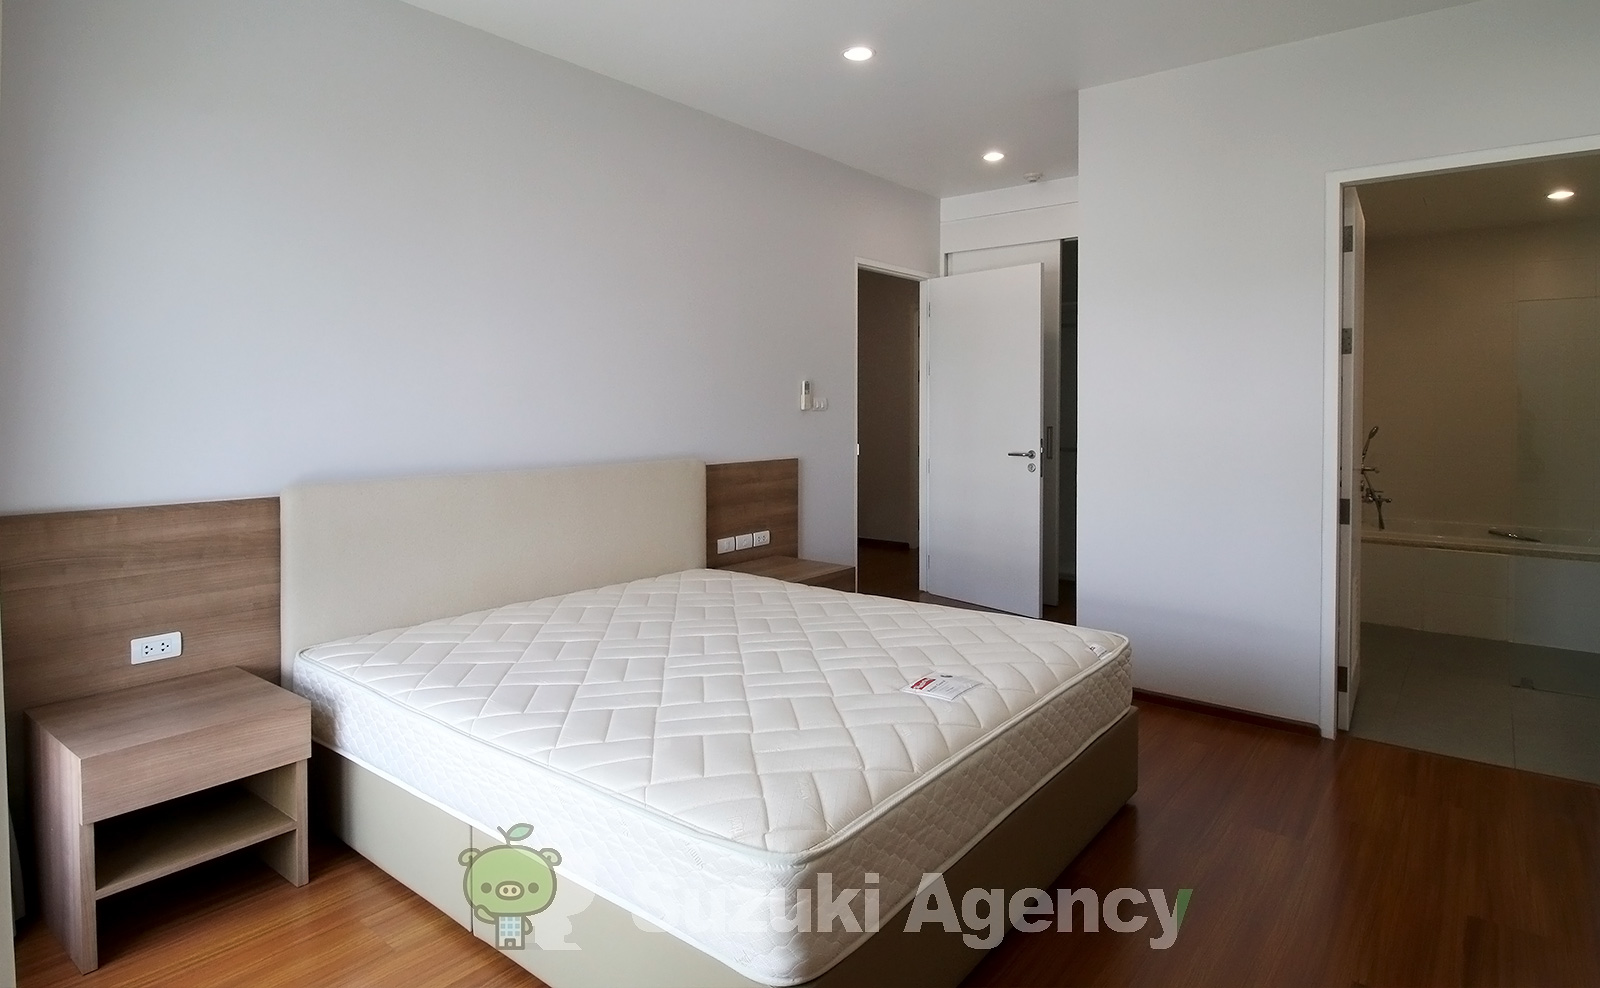 Thonglor 11 Residence:3Bed Room Photos No.8